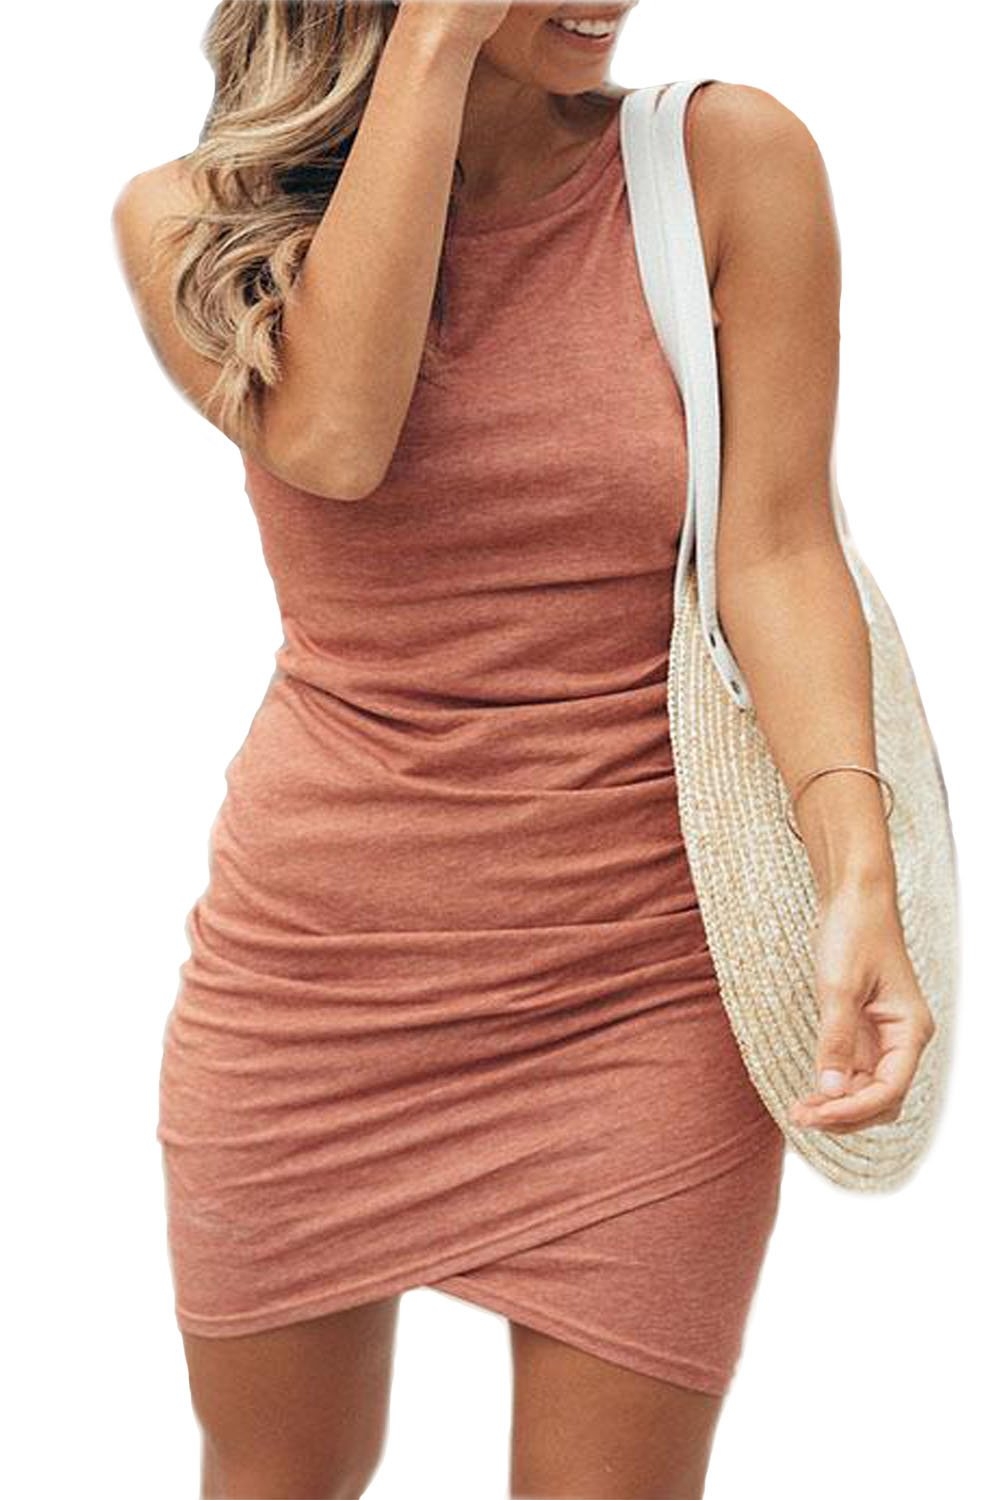 Walant Womens Short Sleeve Sheath Dress Solid Color Irregular Hem Summer Bodycon Mini Dress (L, X-Pink)